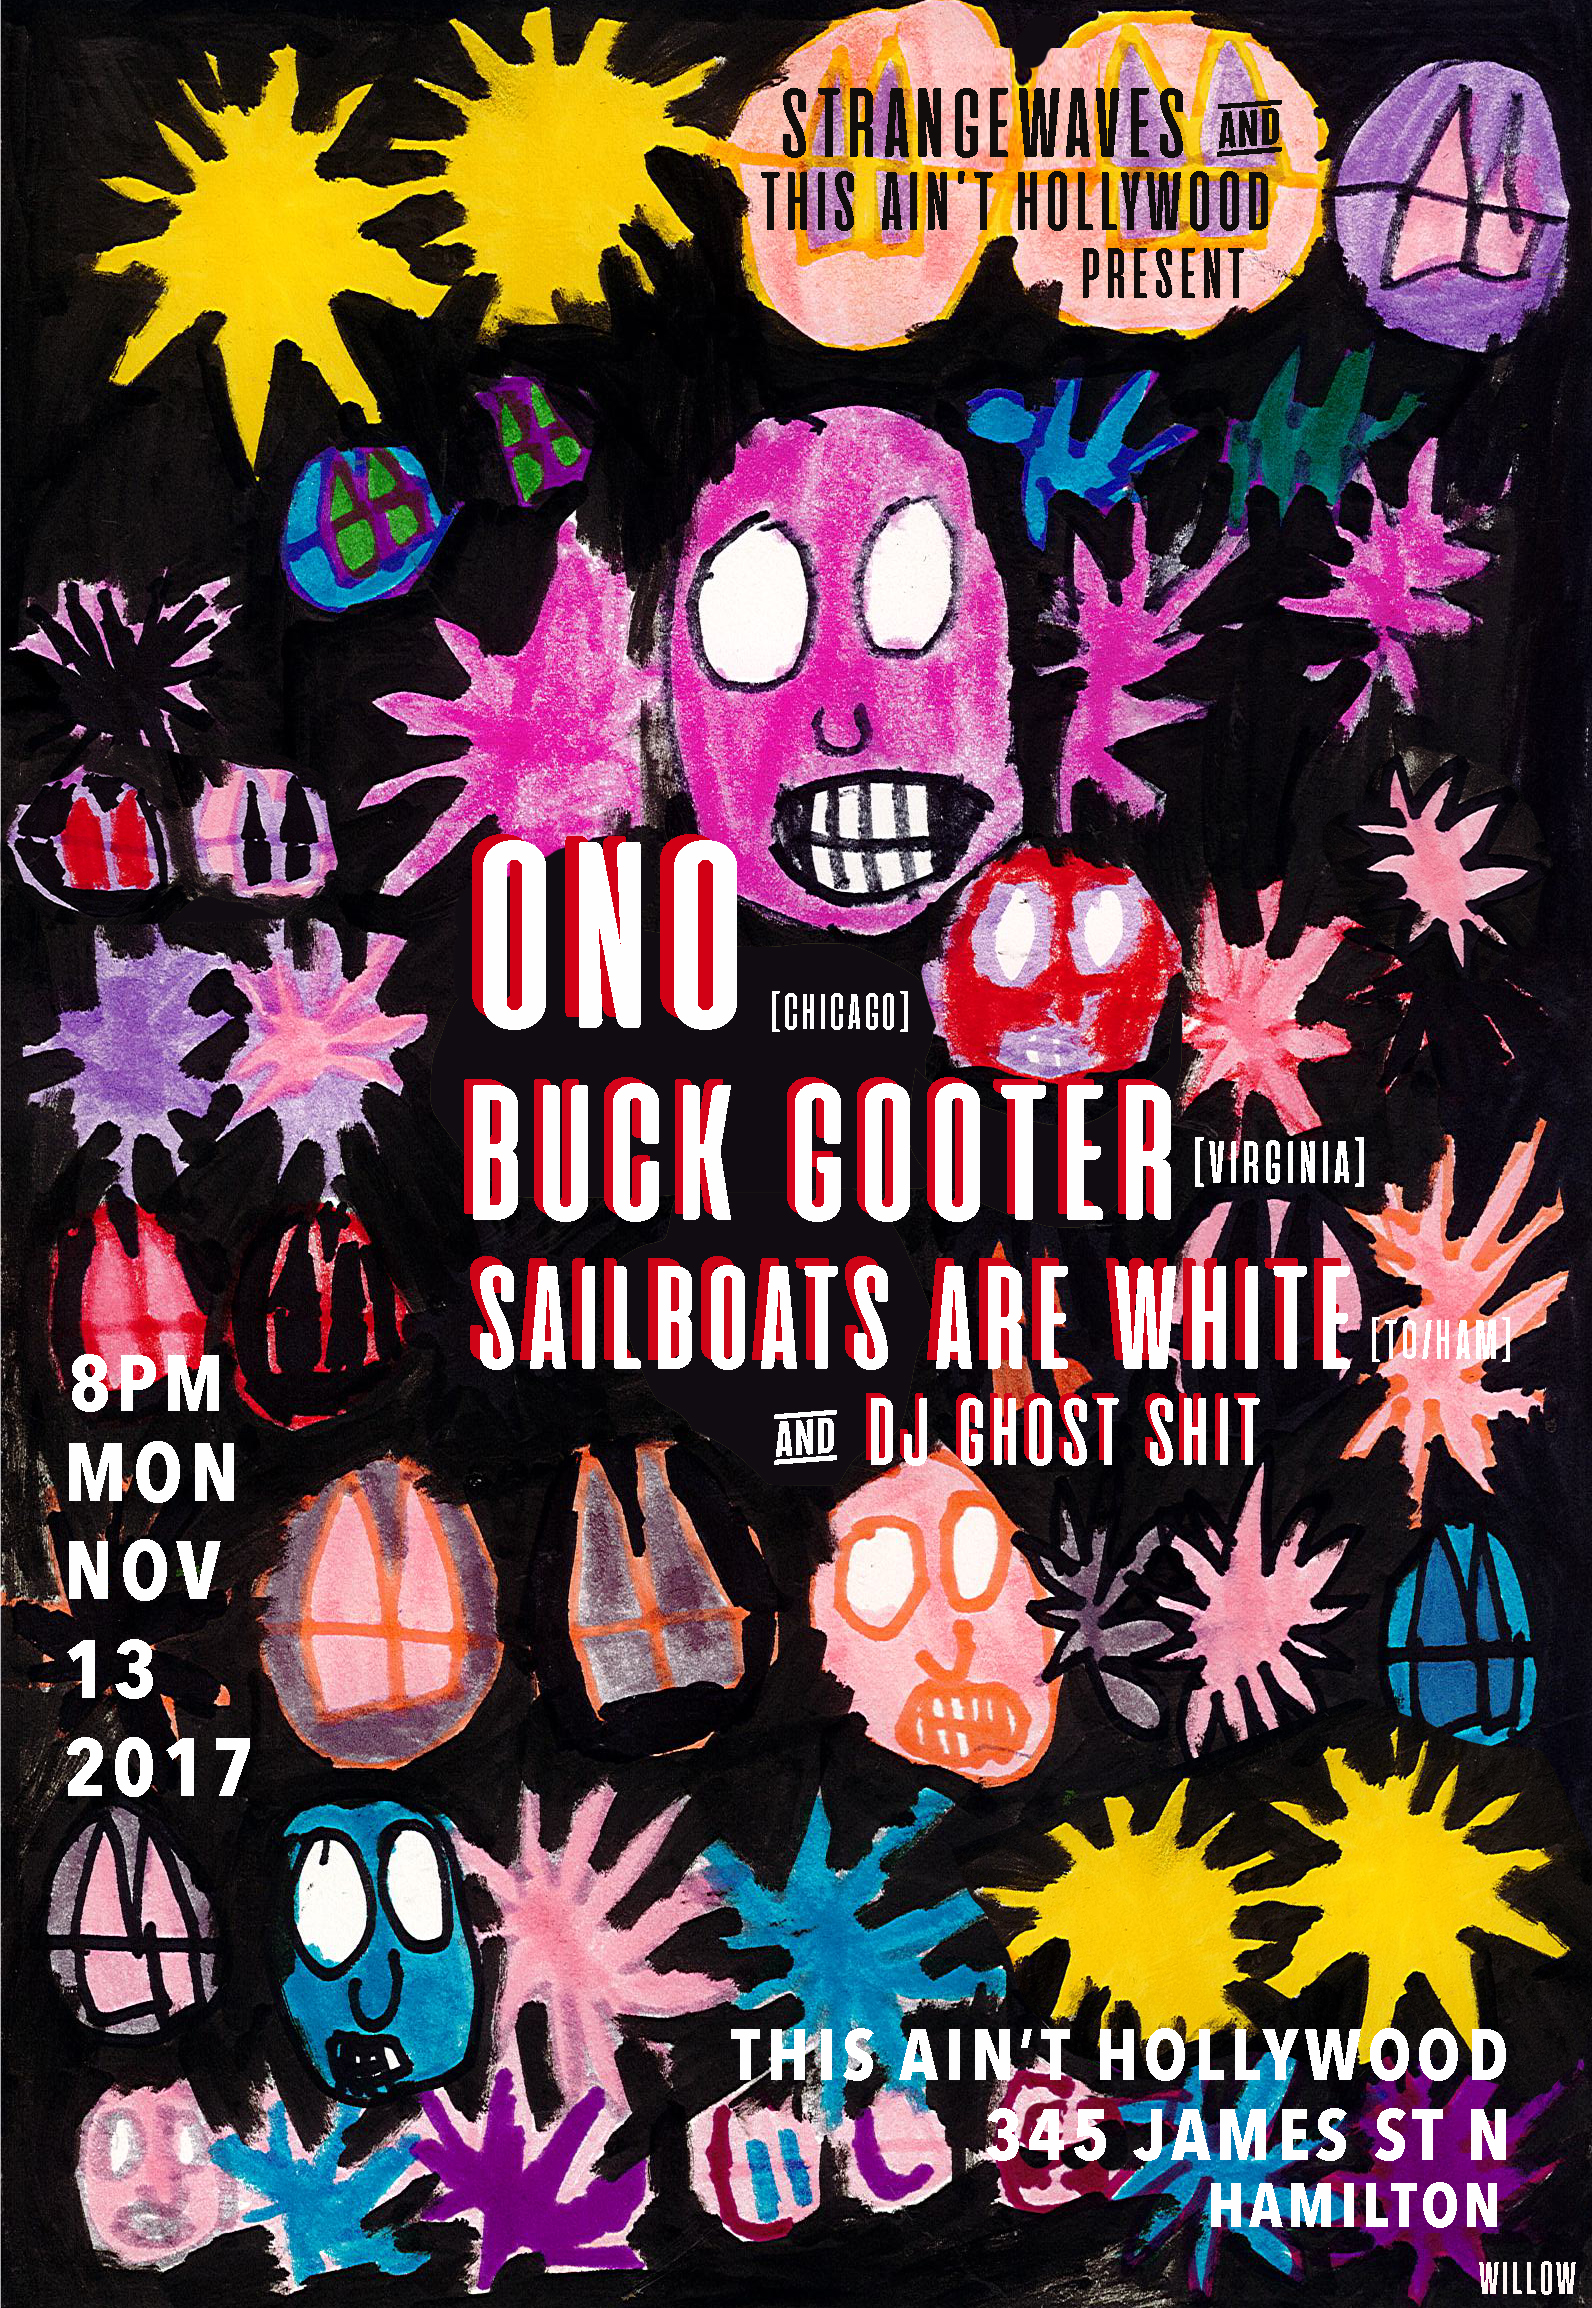 ONO (Avant Gospel Legends) Buck Gooter, Sailboats are White  @This Ain't Hollywood